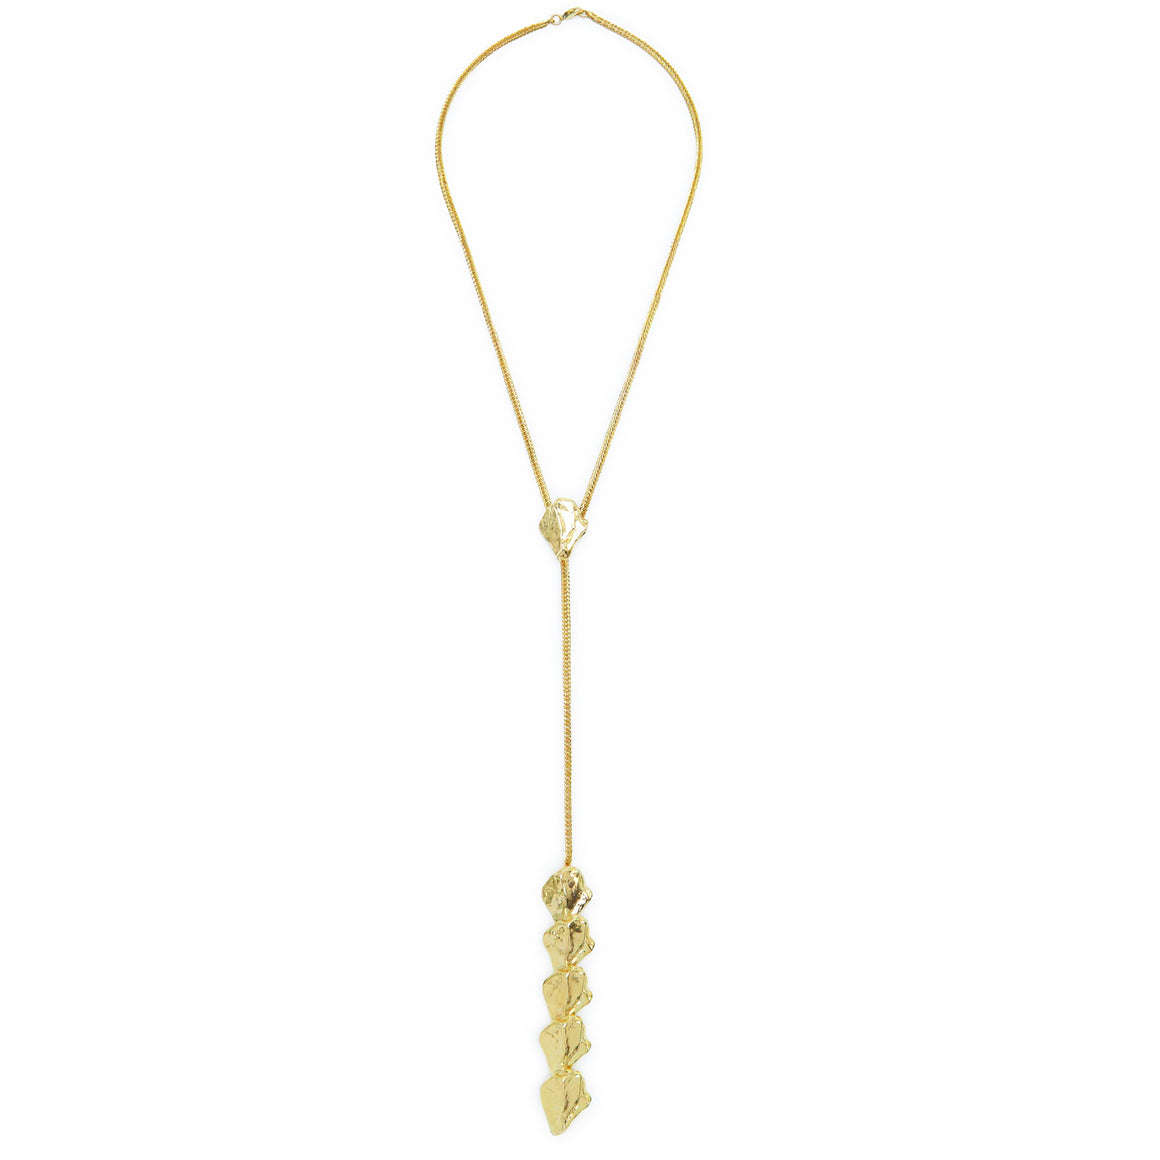 spine necklace-gold-designed by alexandra koumbva